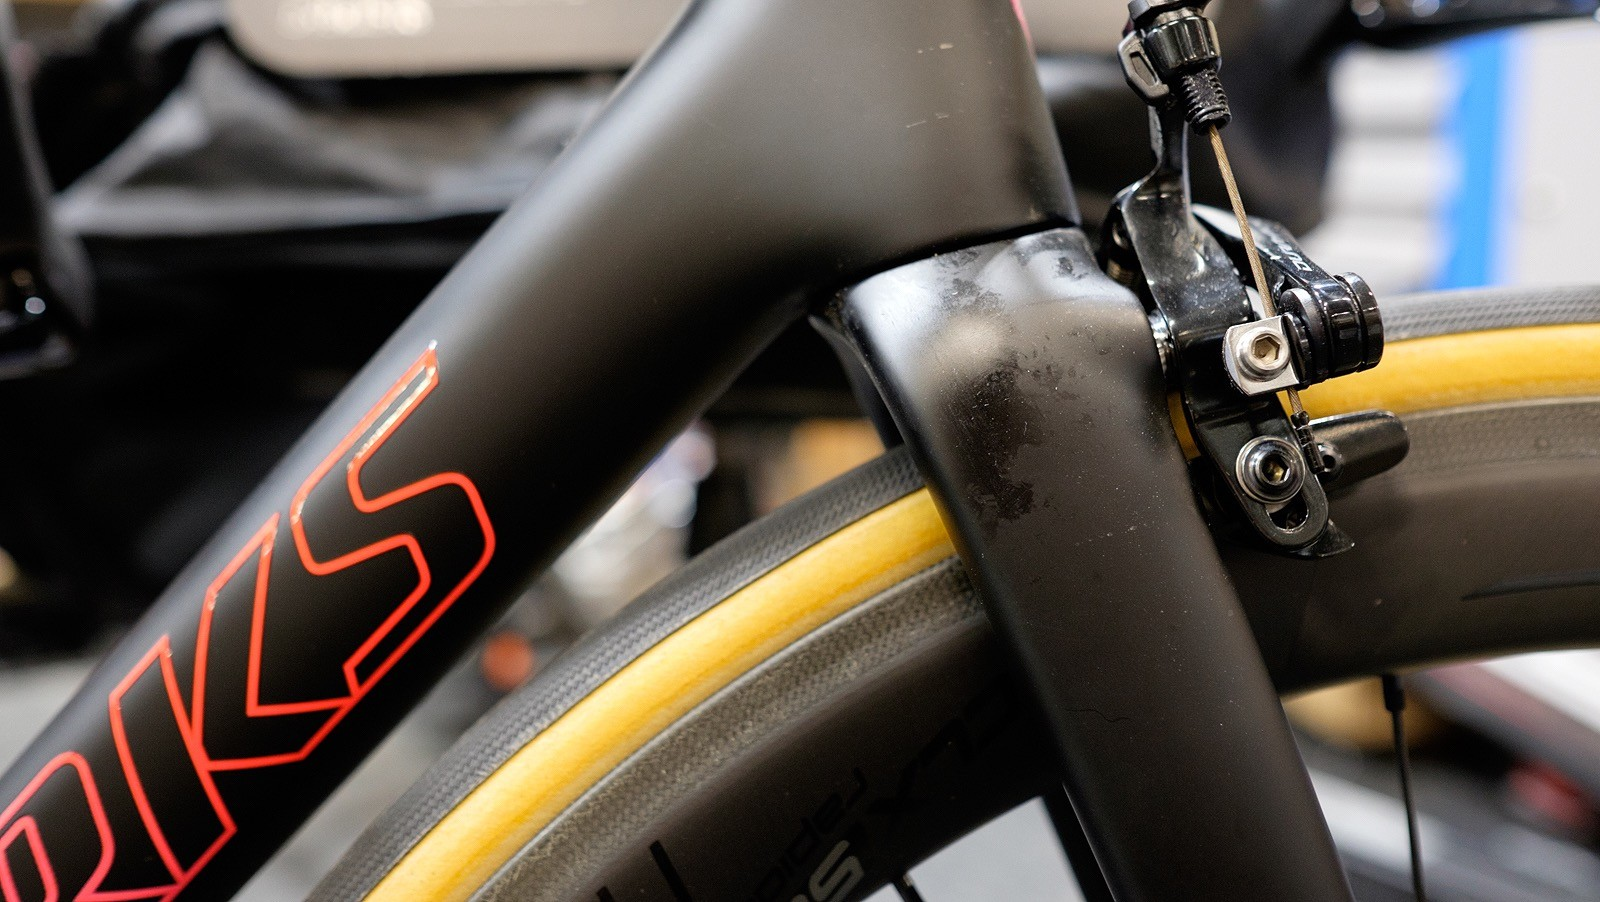 Oily fingerprints were spoiling the matt finish of this tidy S-Works Tarmac...